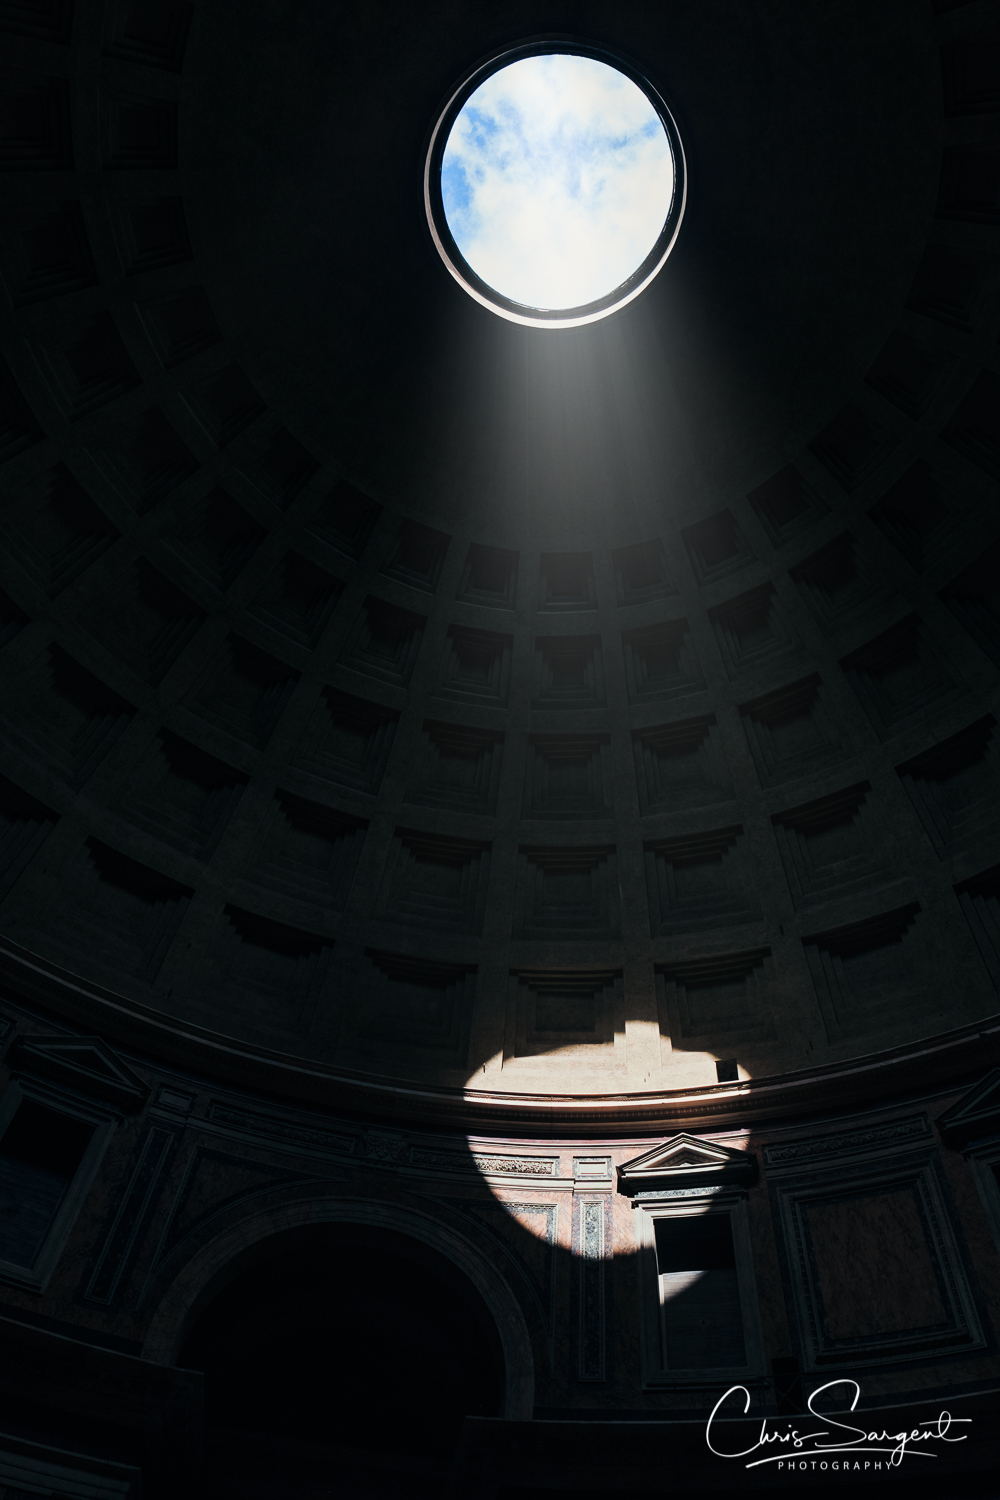 Fuji X-T2 16mm f1.4 The Pantheon